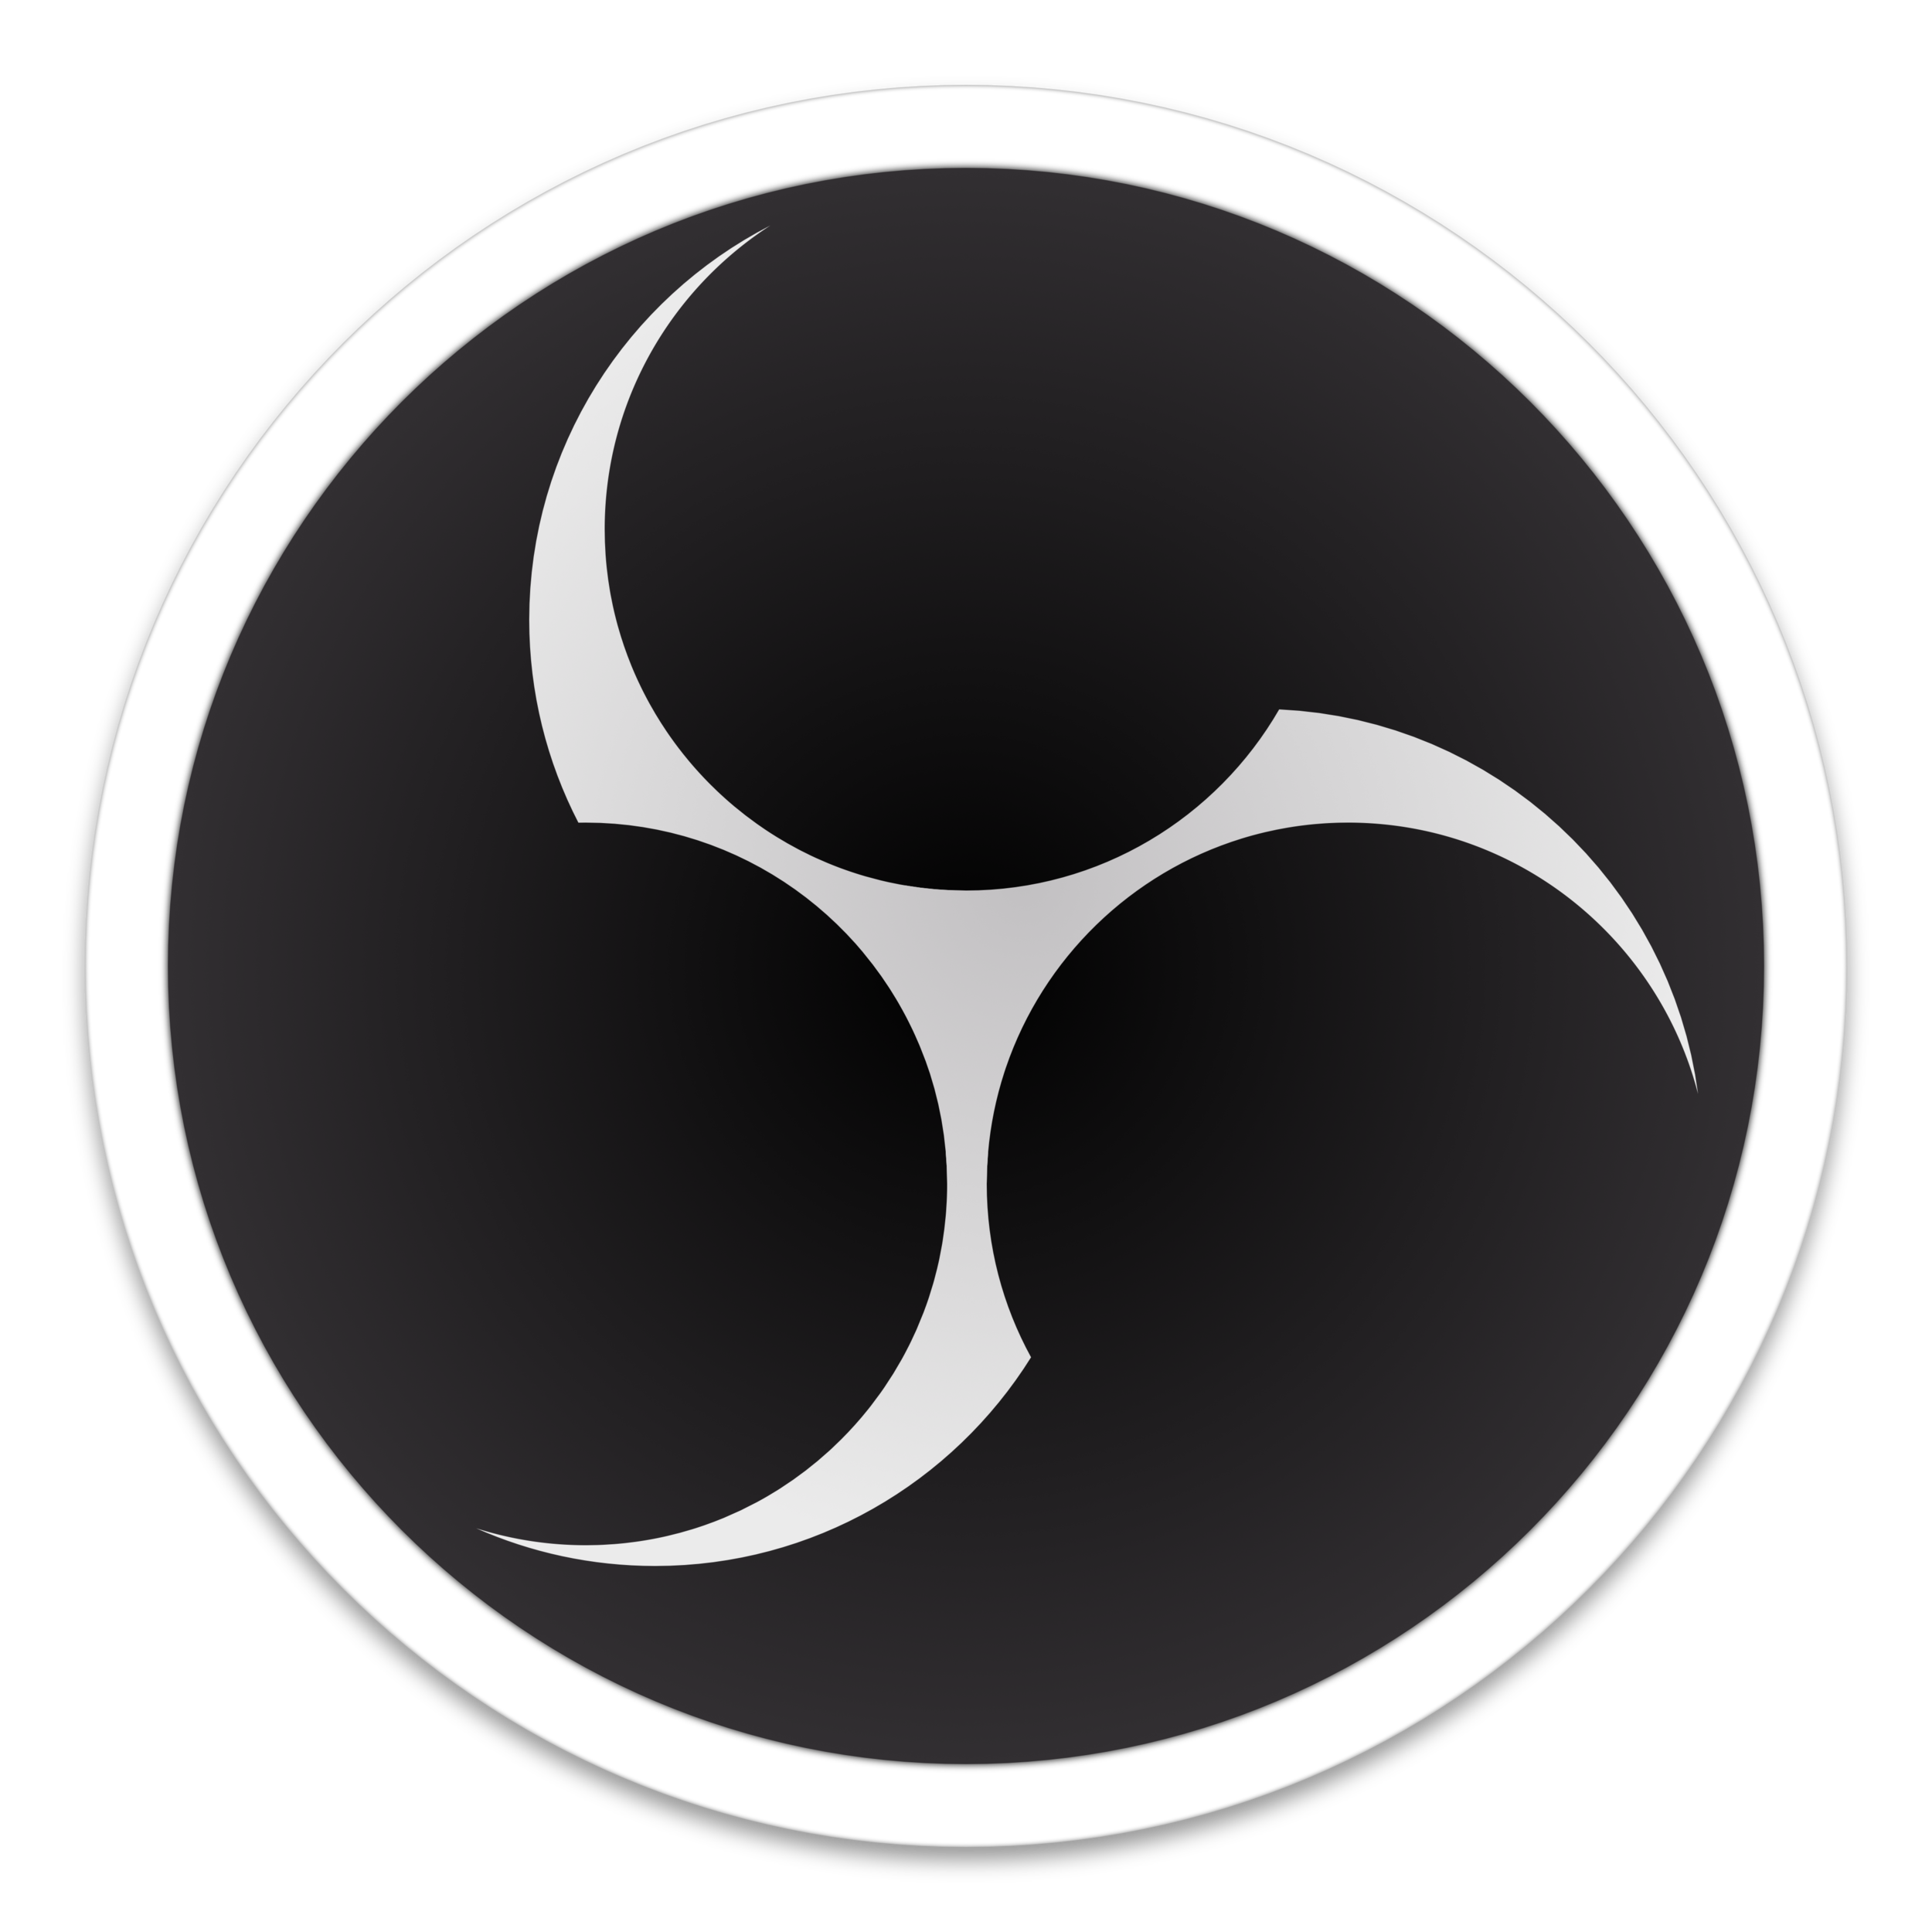 Open_Broadcaster_Software_Logo.png